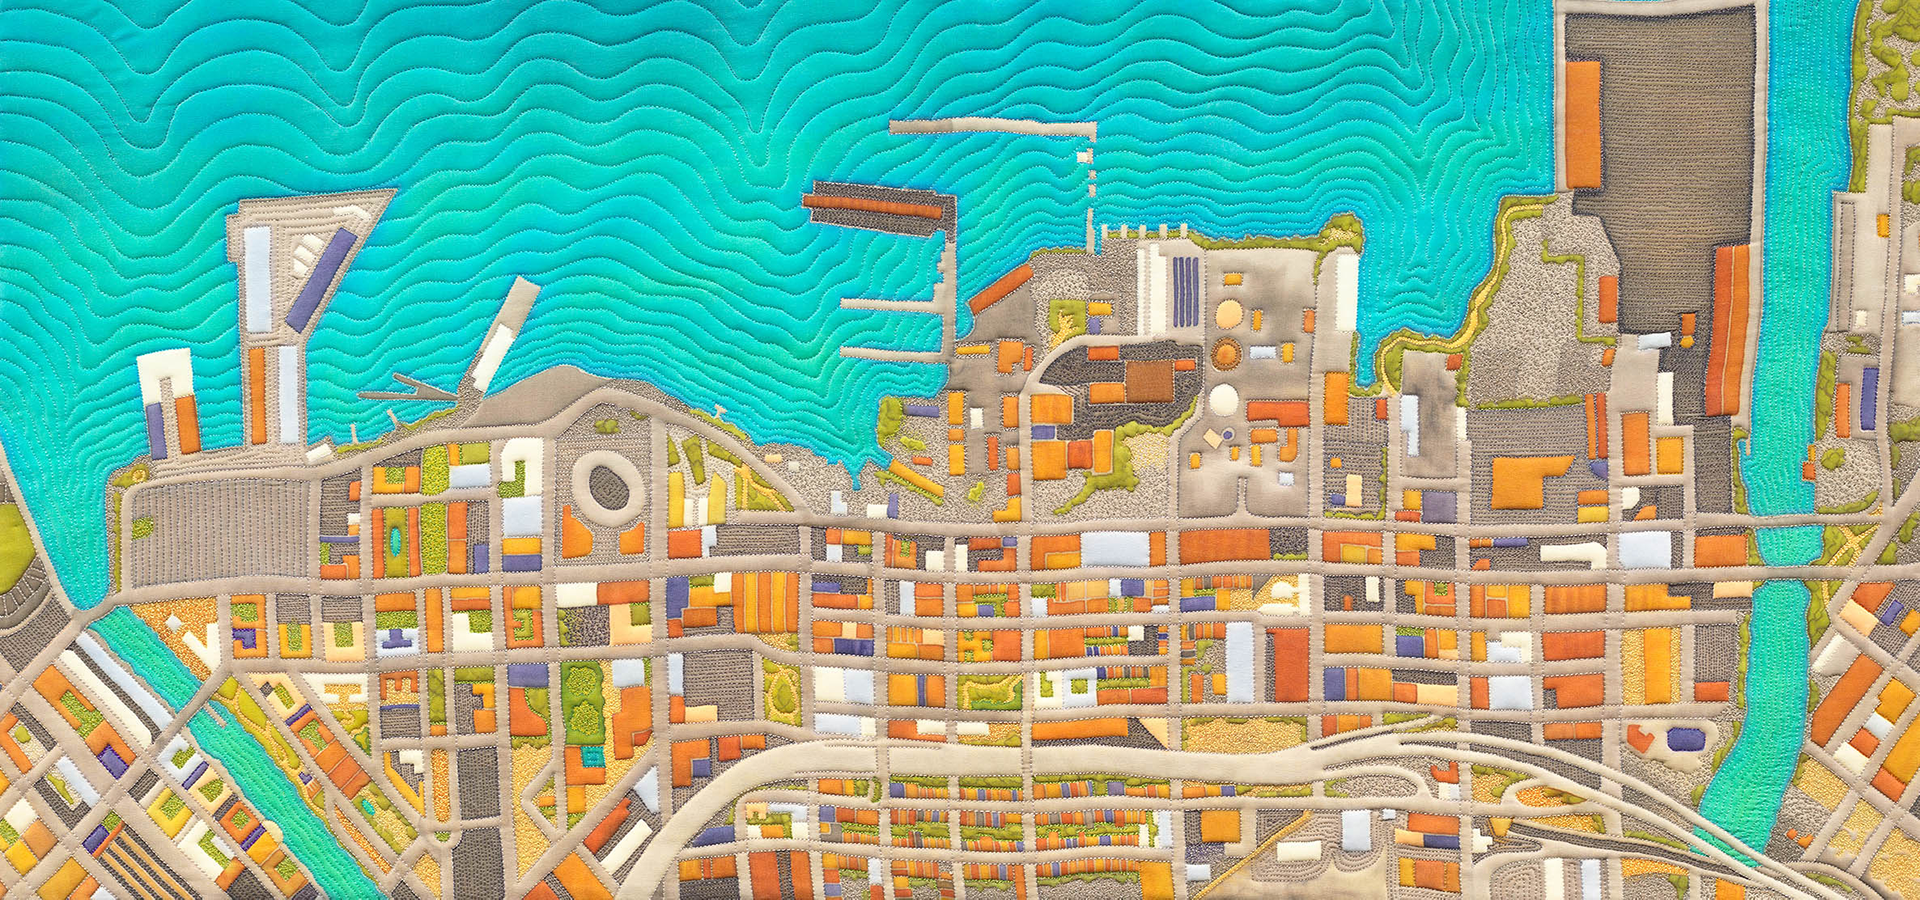 Embroidered, quilted map of San Francisco's Dogpatch neighborhood